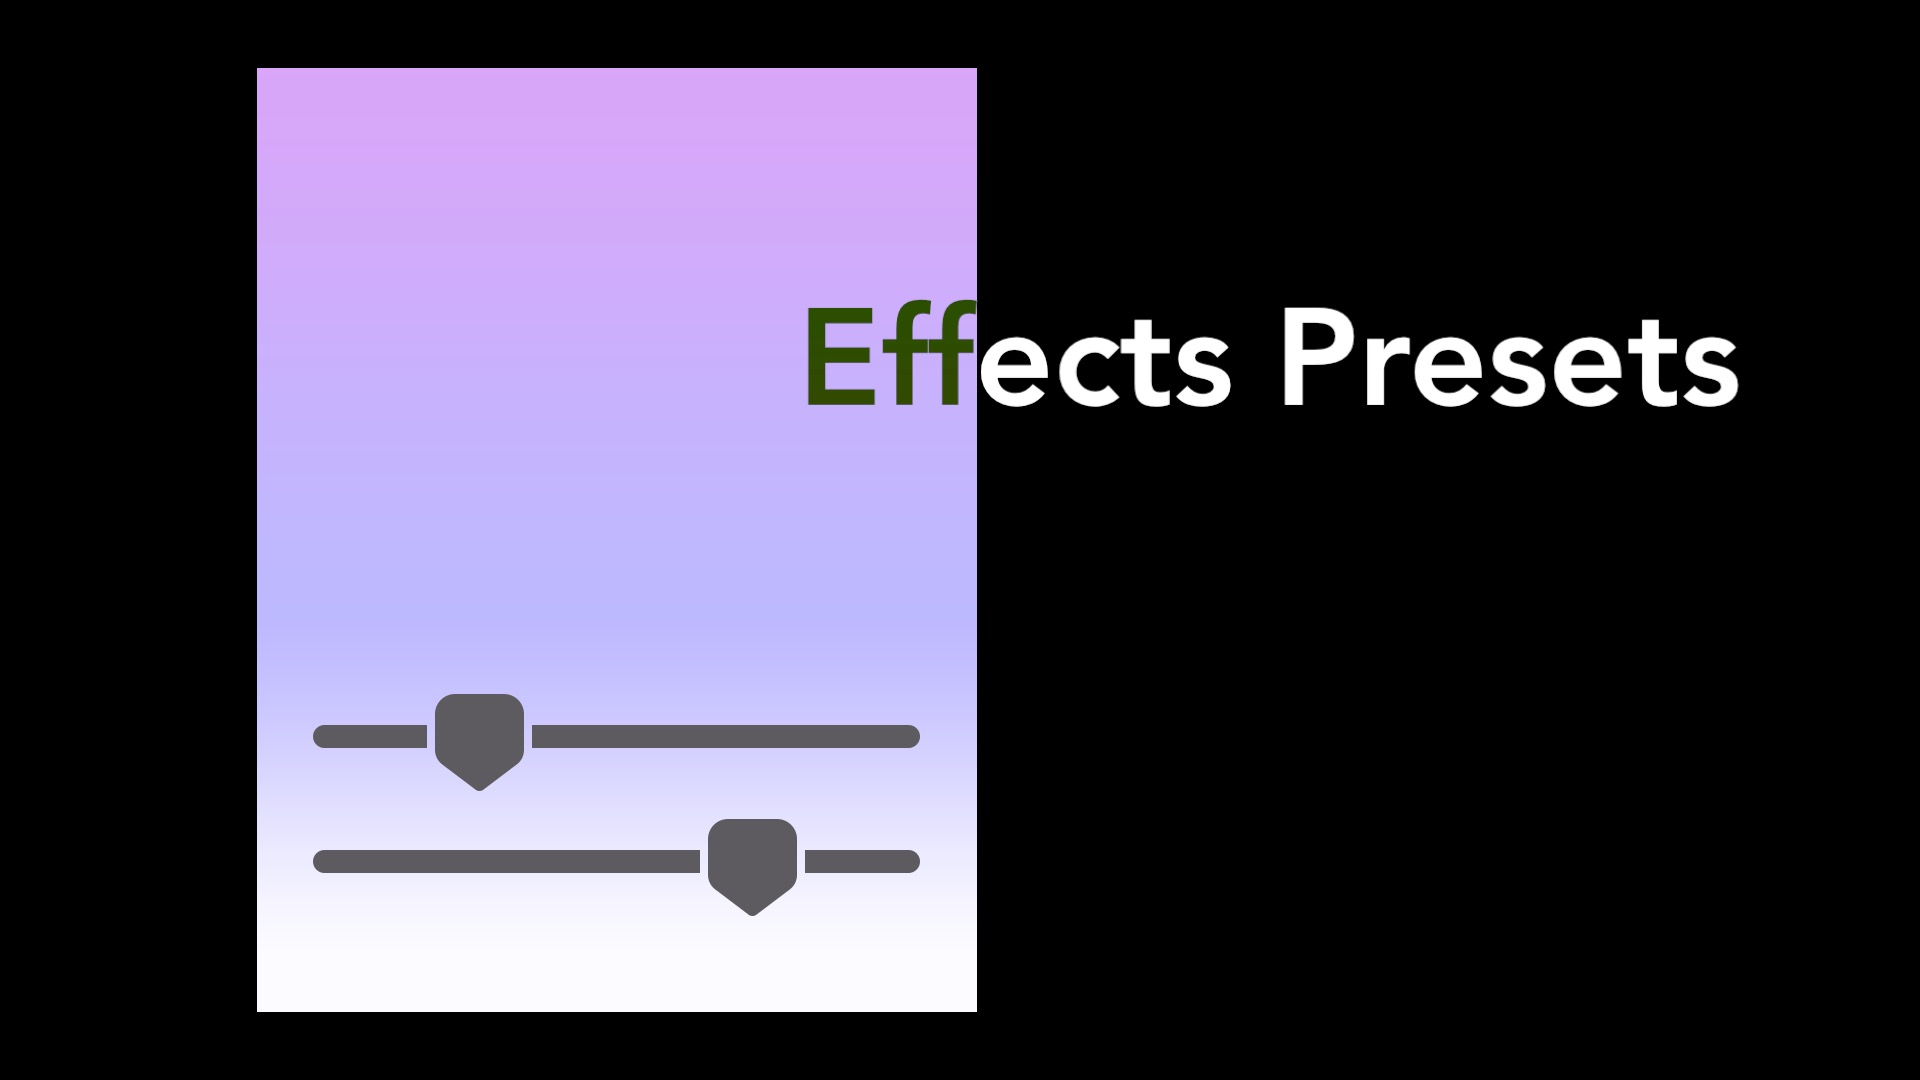 Effects Presets - Already designed effects created by Sight-Creations